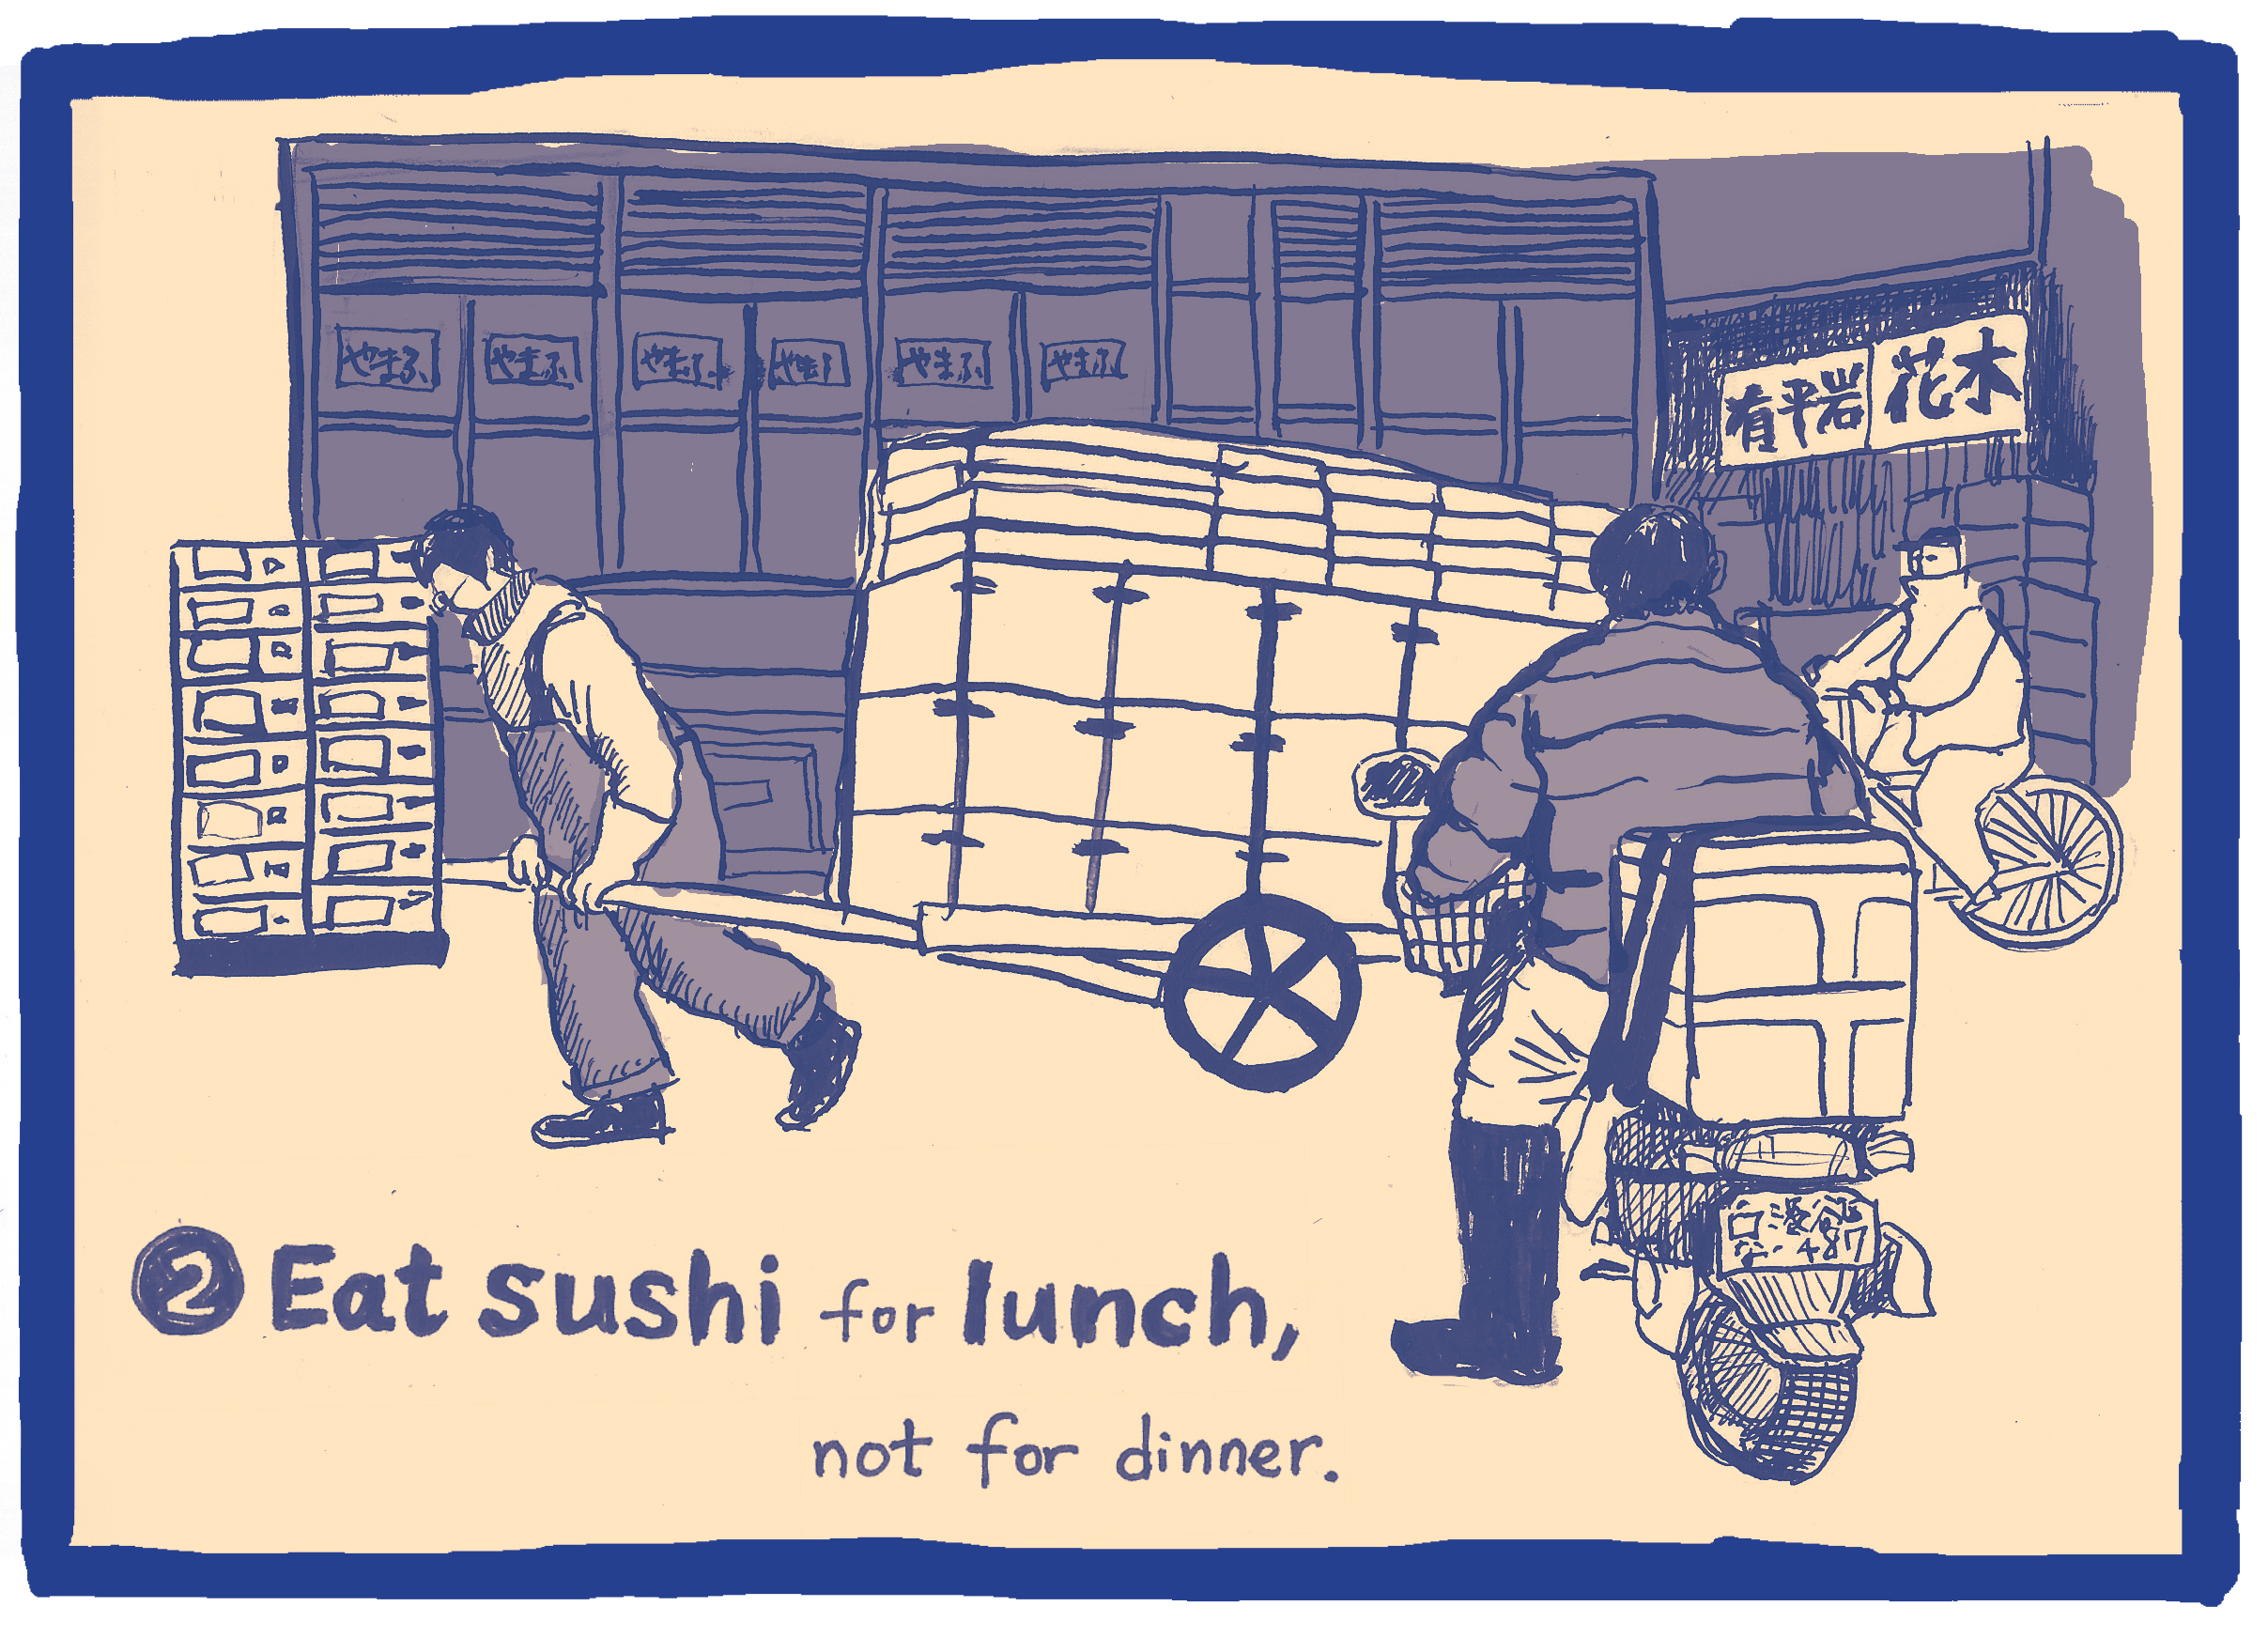 The Ten Commandments of Sushi #2